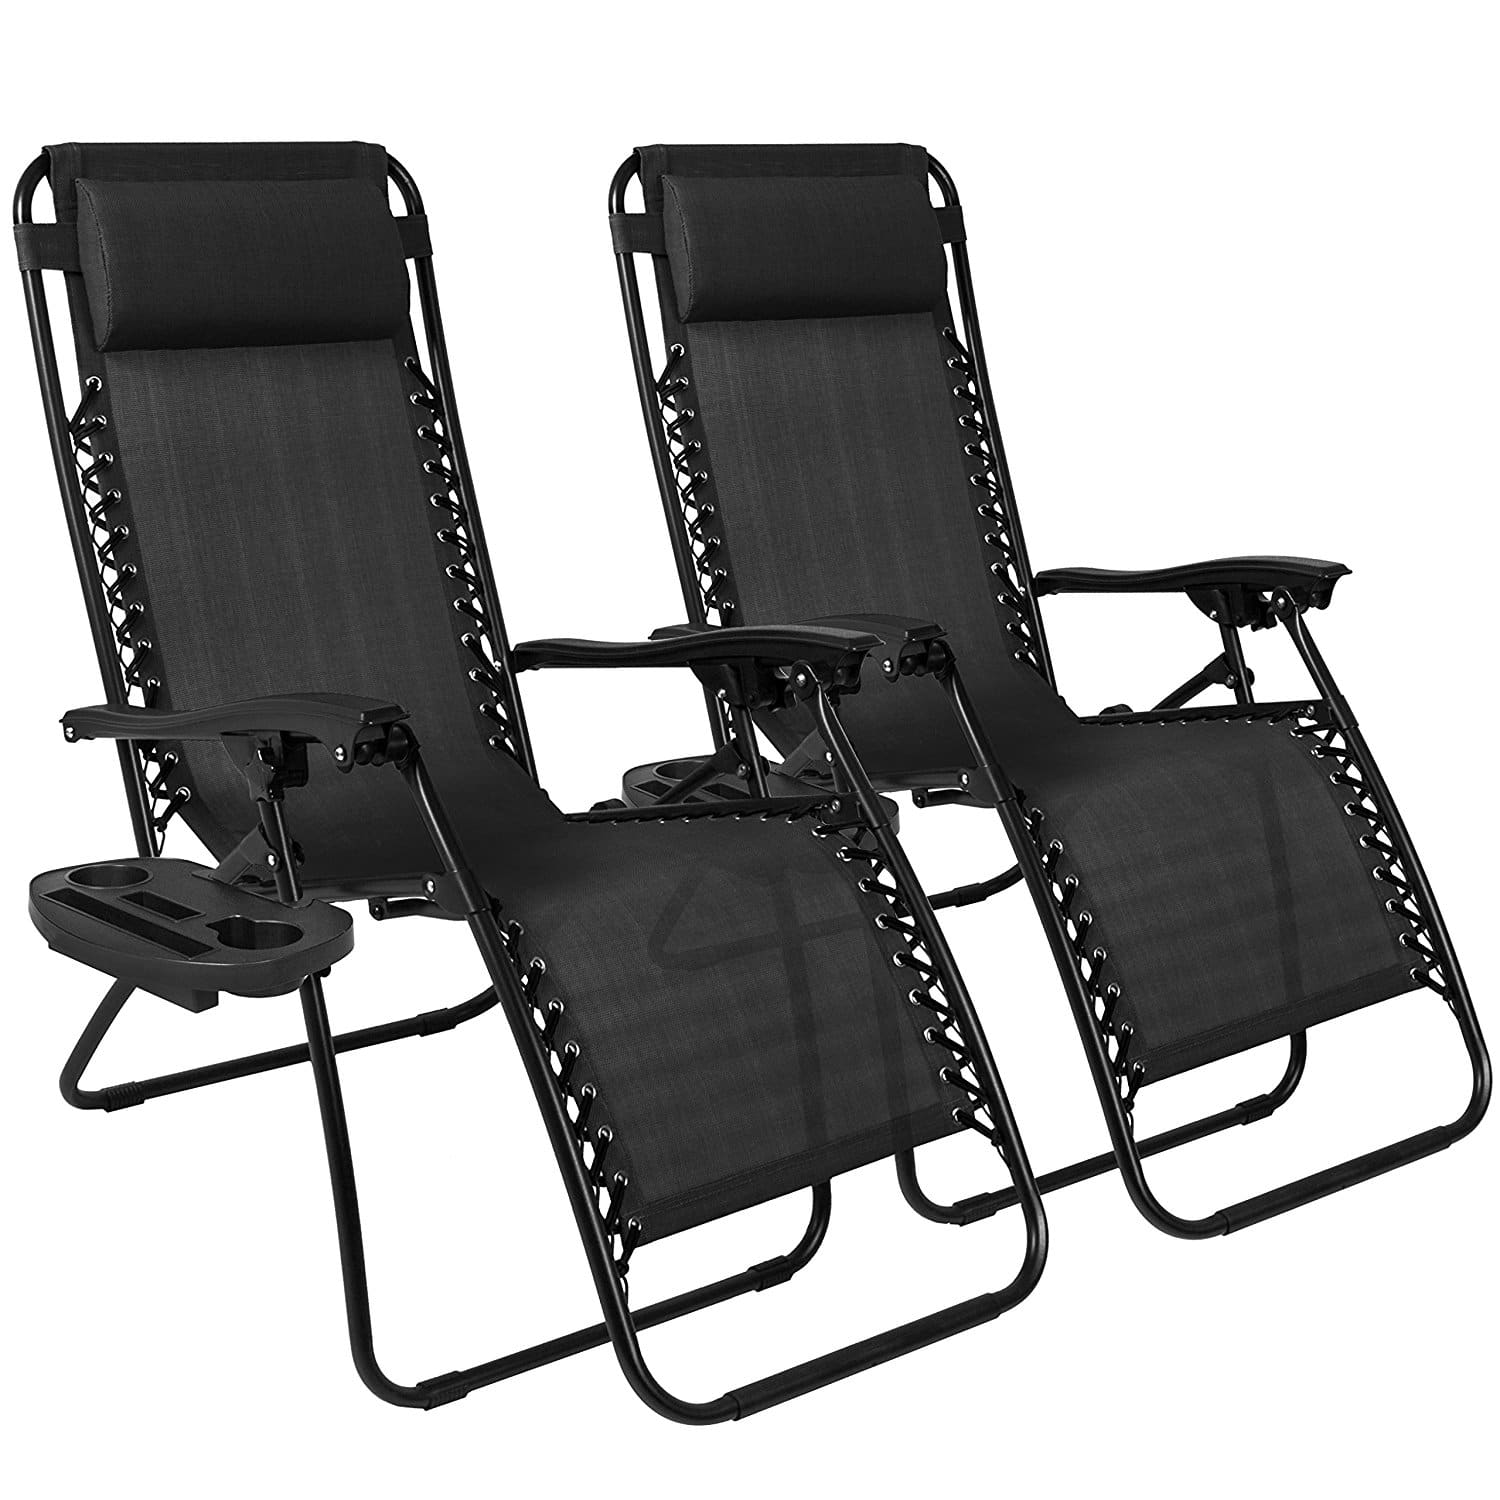 Top 10 Best Pool Lounge Chairs Reviews For Patio In 2019